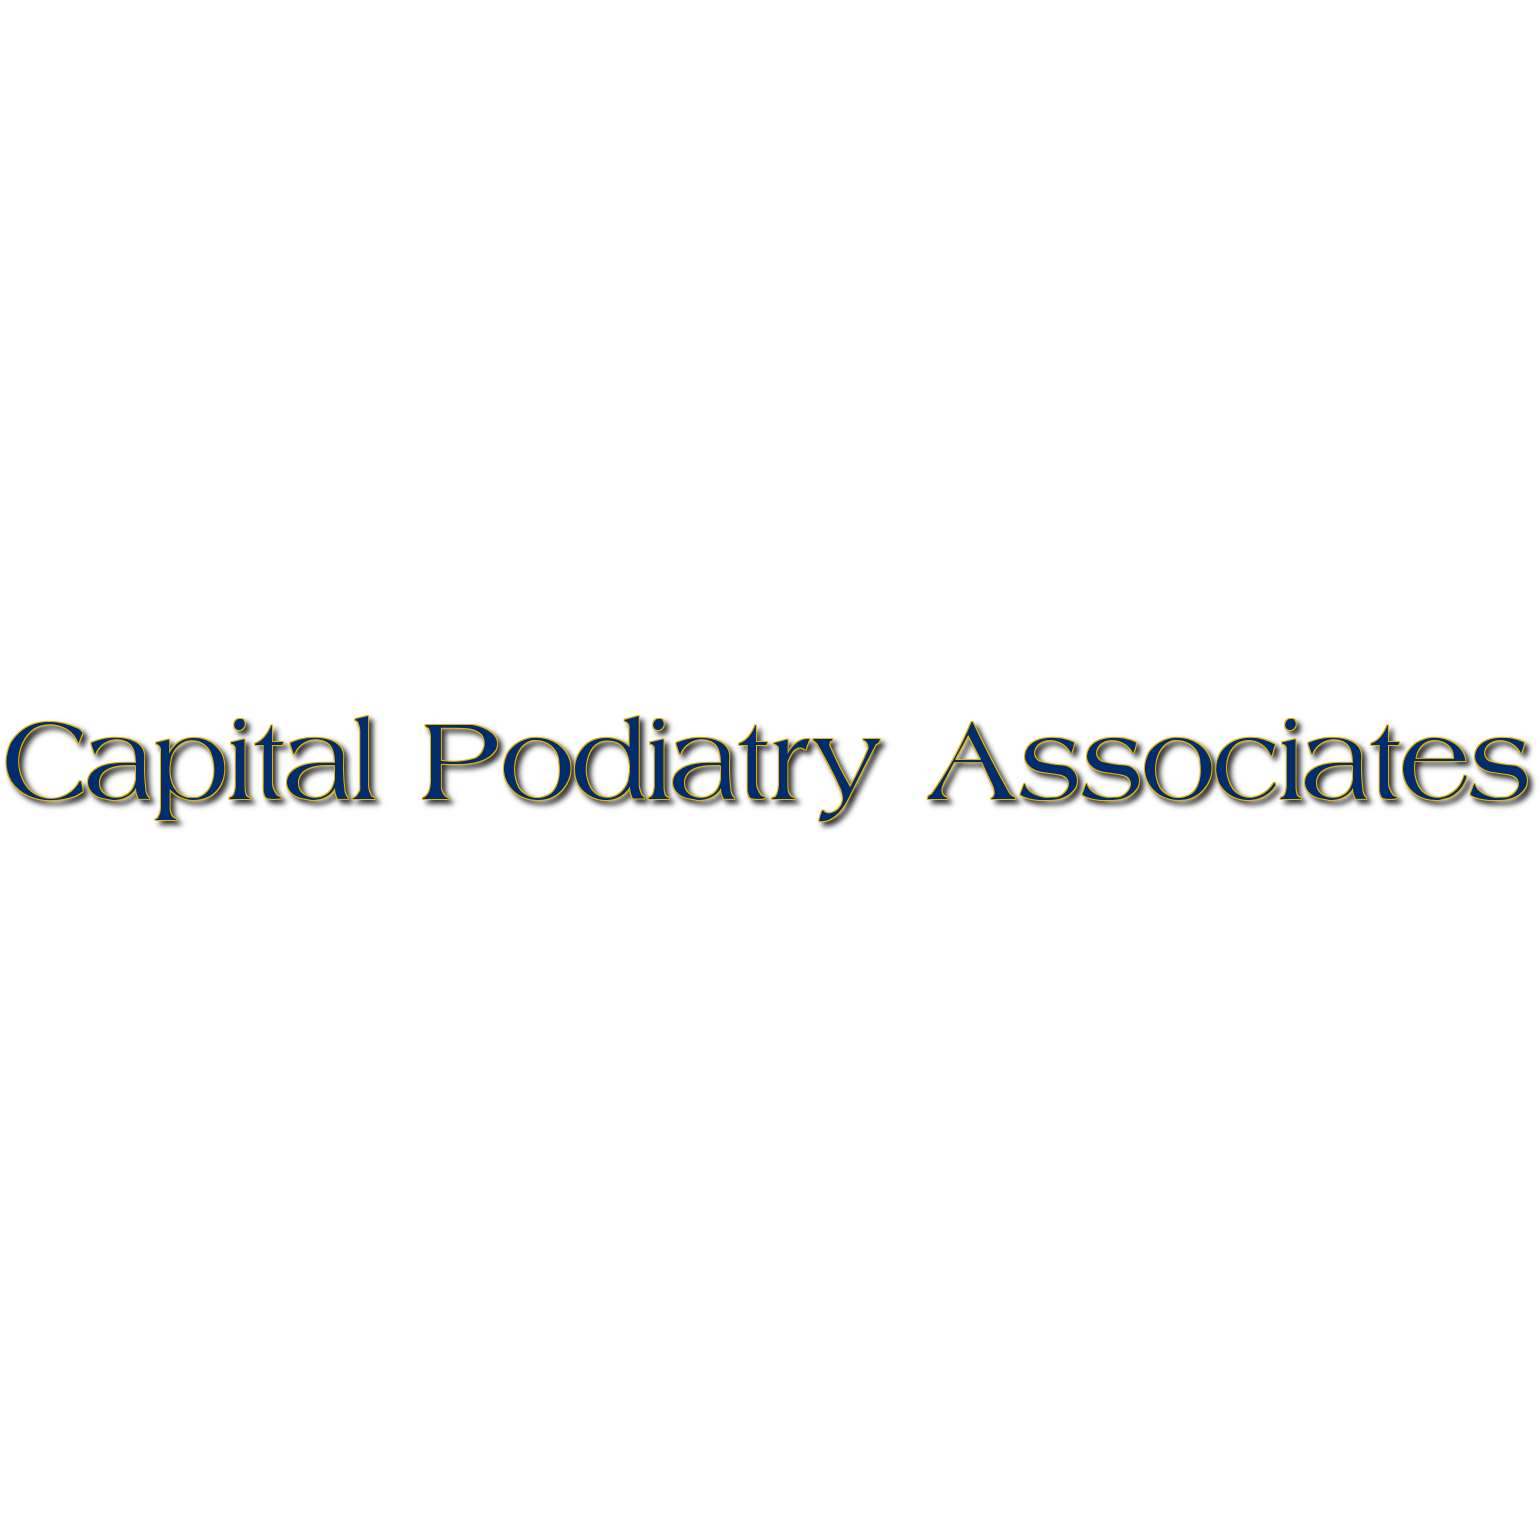 Capital Podiatry Associates